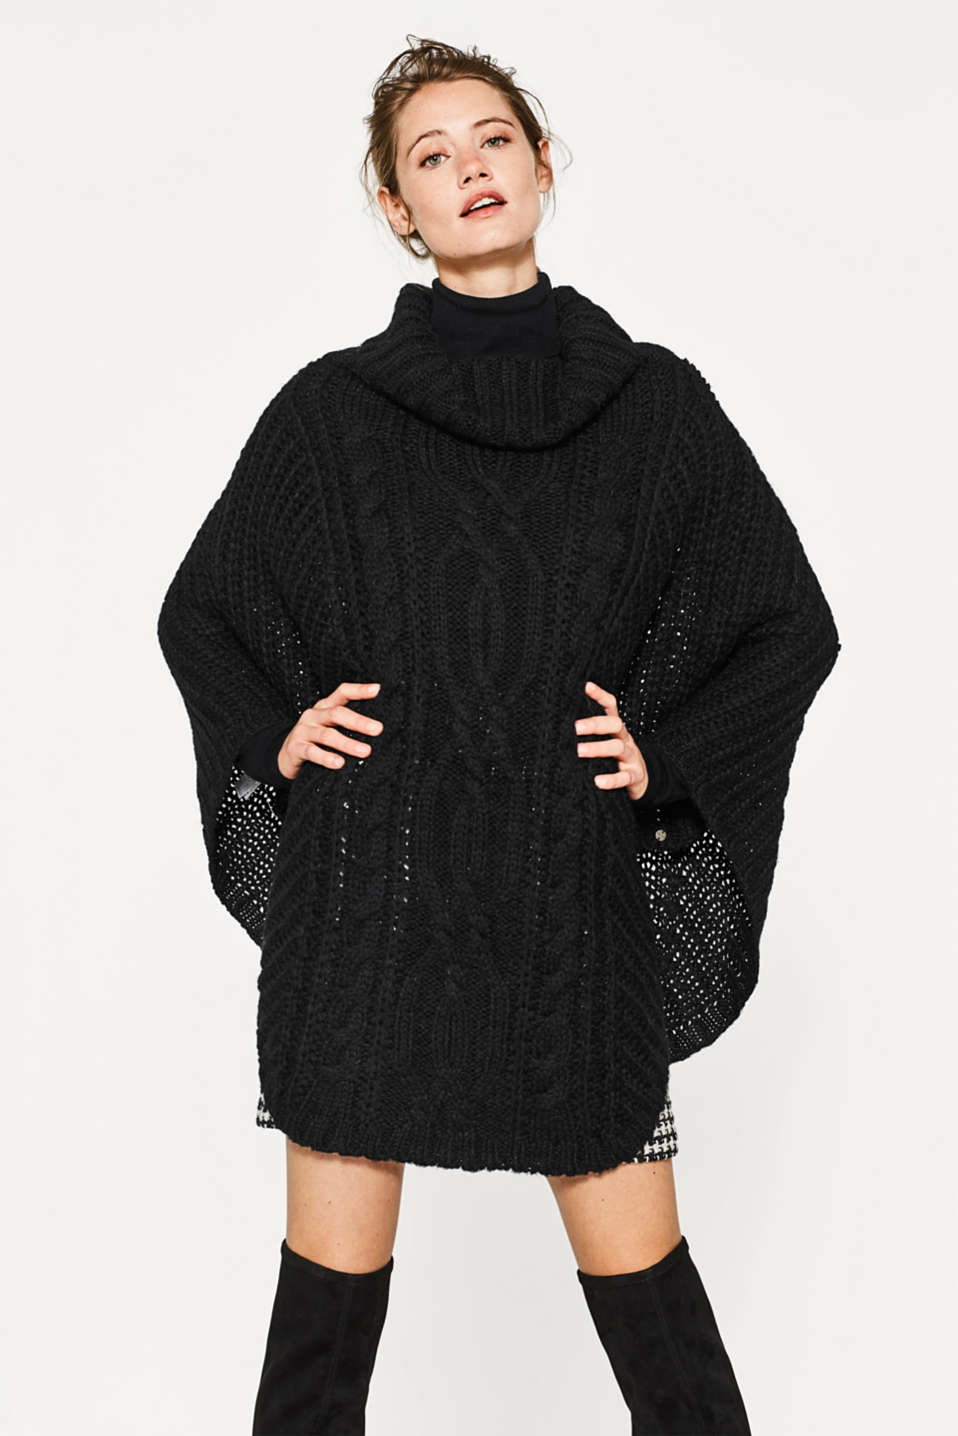 A striking cable pattern and an exquisite material mix of wool and mohair: this poncho is a highlight